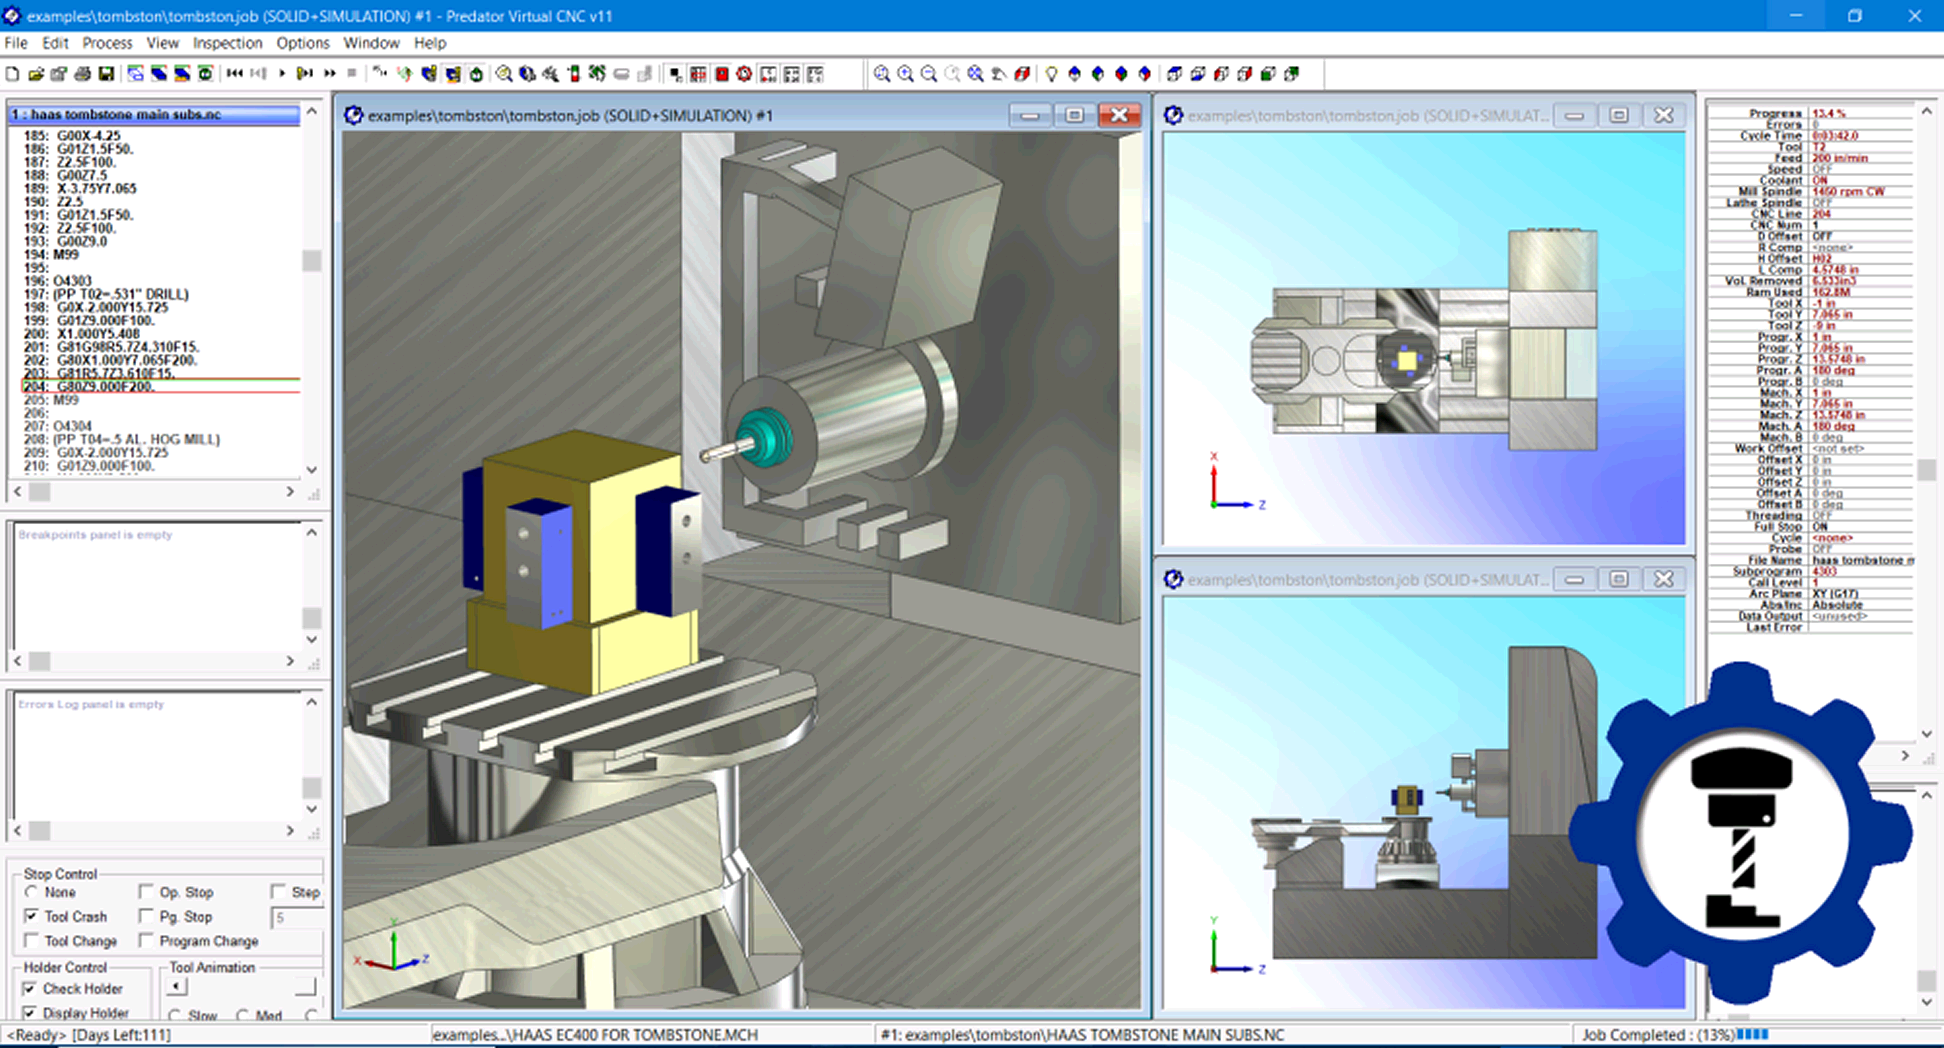 Predator Virtual CNC Software Version 11 Release History